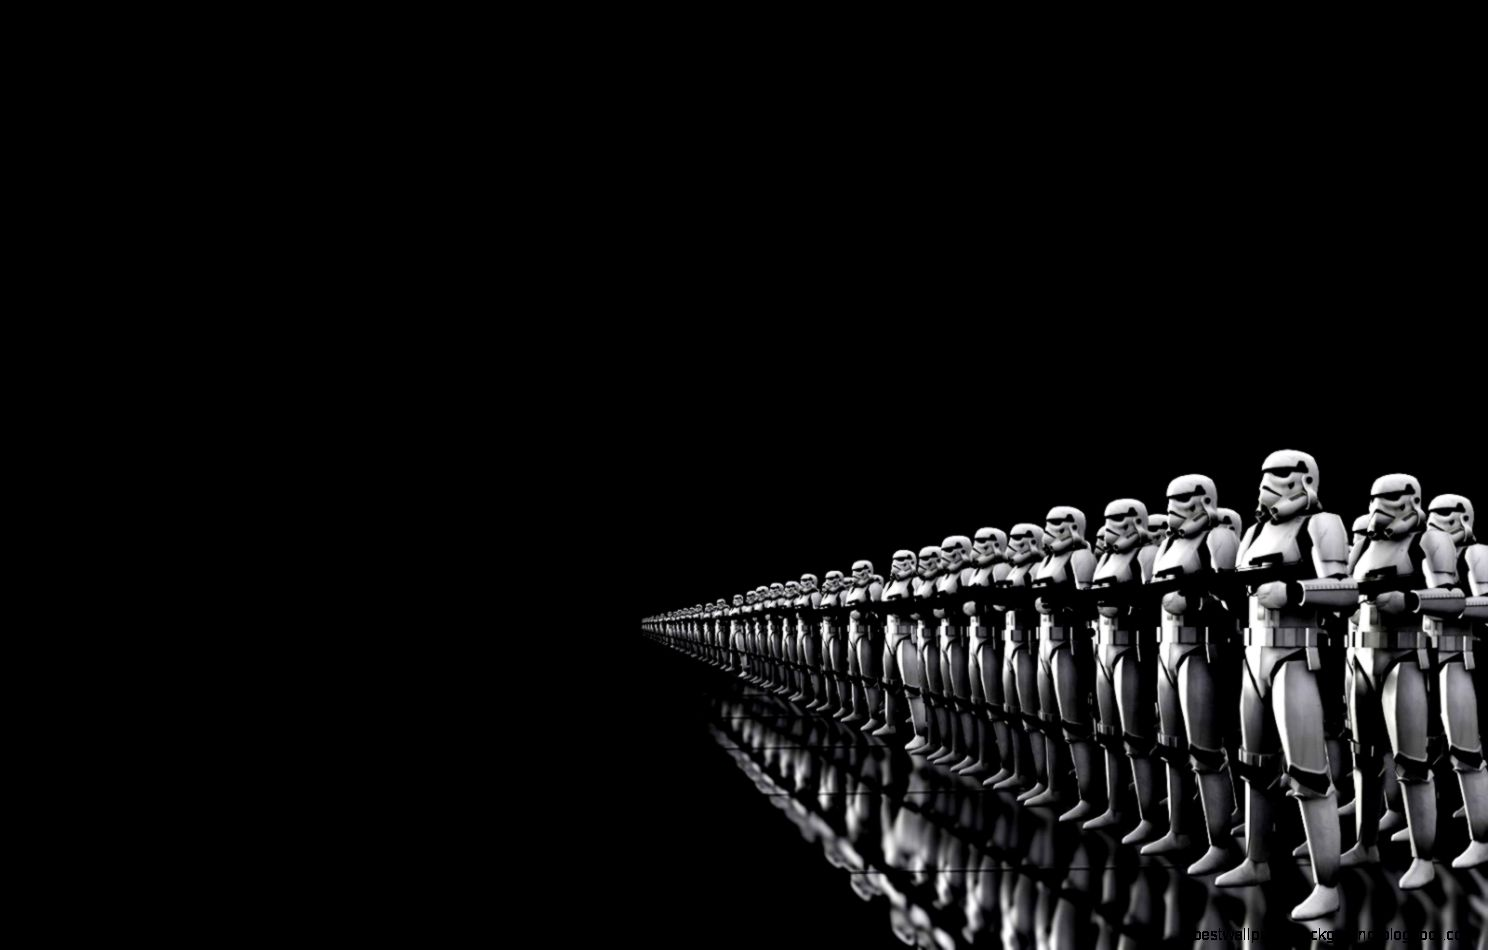 View Original Size. Star Wars HD Wallpapers and Backgrounds Image source from this